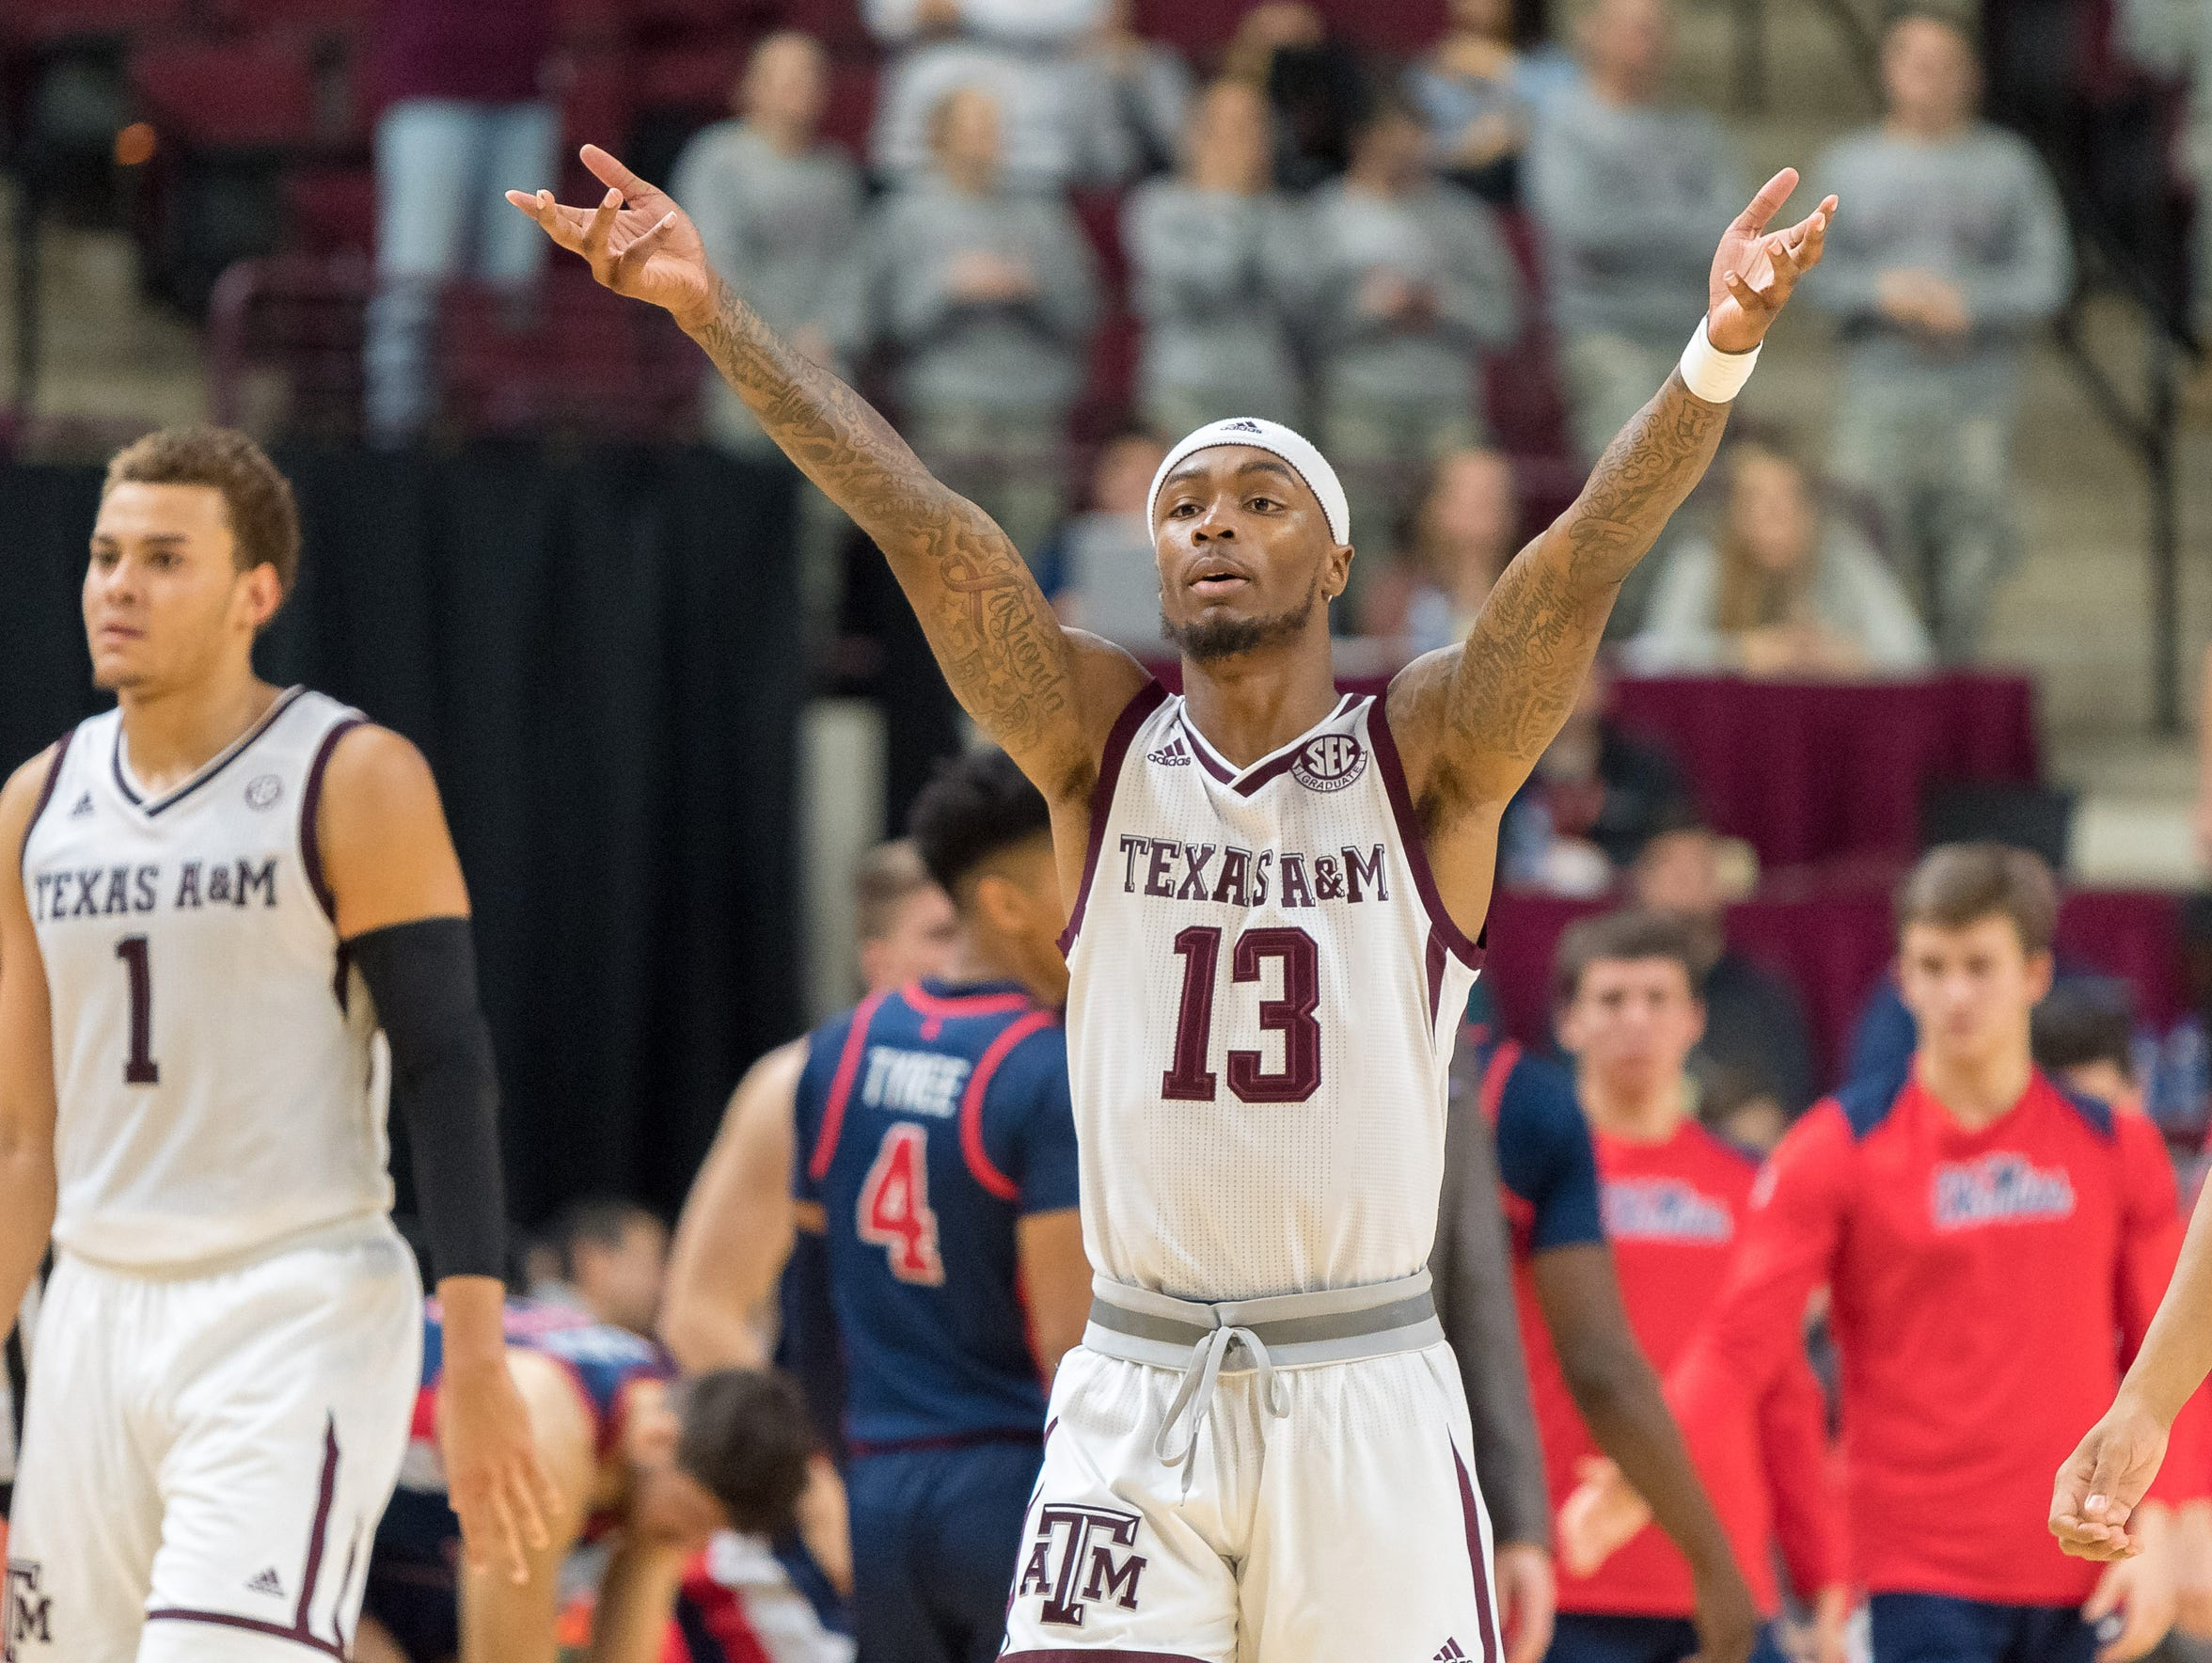 Texas A&M Aggies guard Duane Wilson (13) reacts in the second half against the Mississippi Rebels at Reed Arena on Jan. 16, 2018, in College Station.